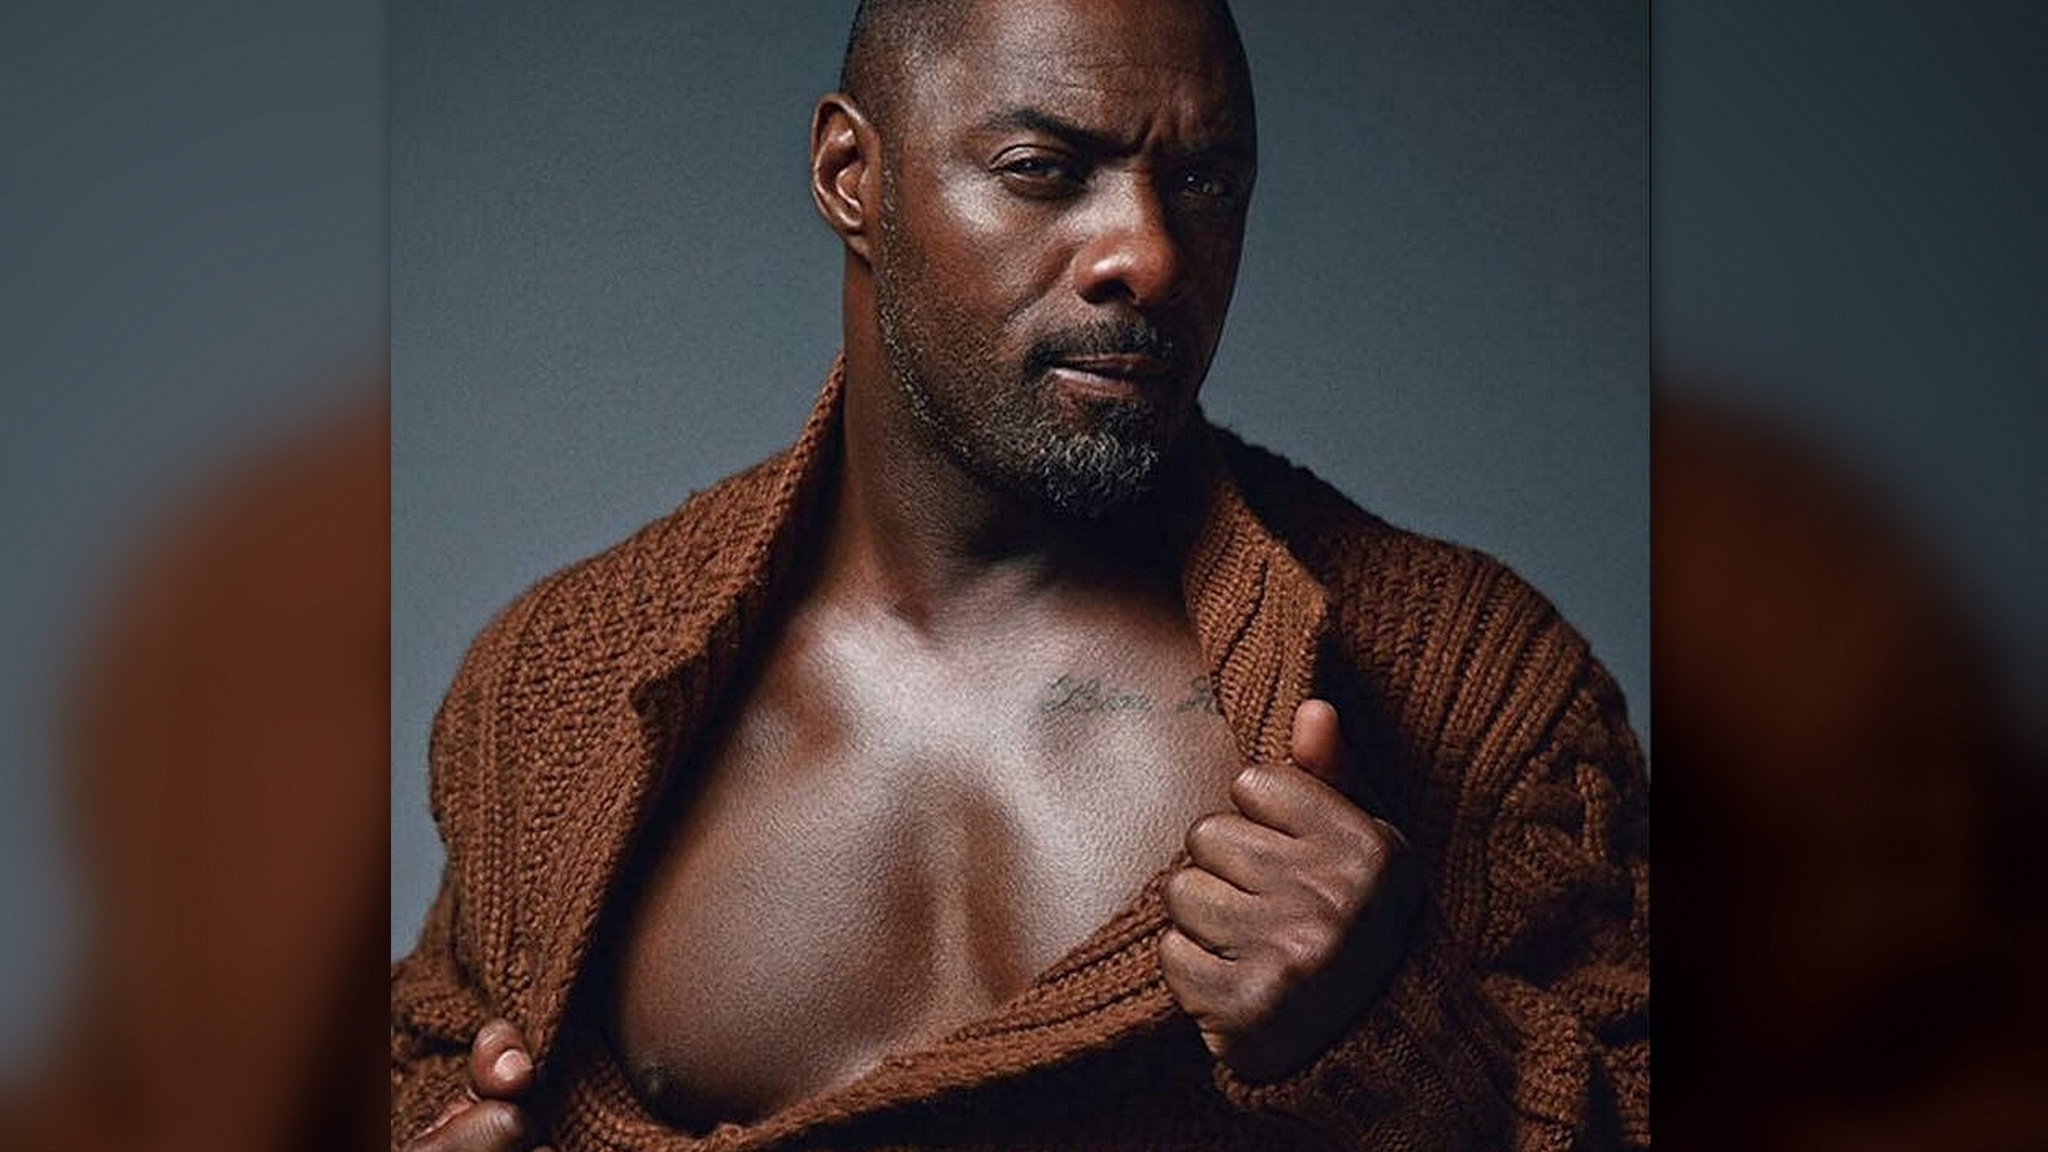 Idris Elba Named People Magazine's 'Sexiest Man Alive'!